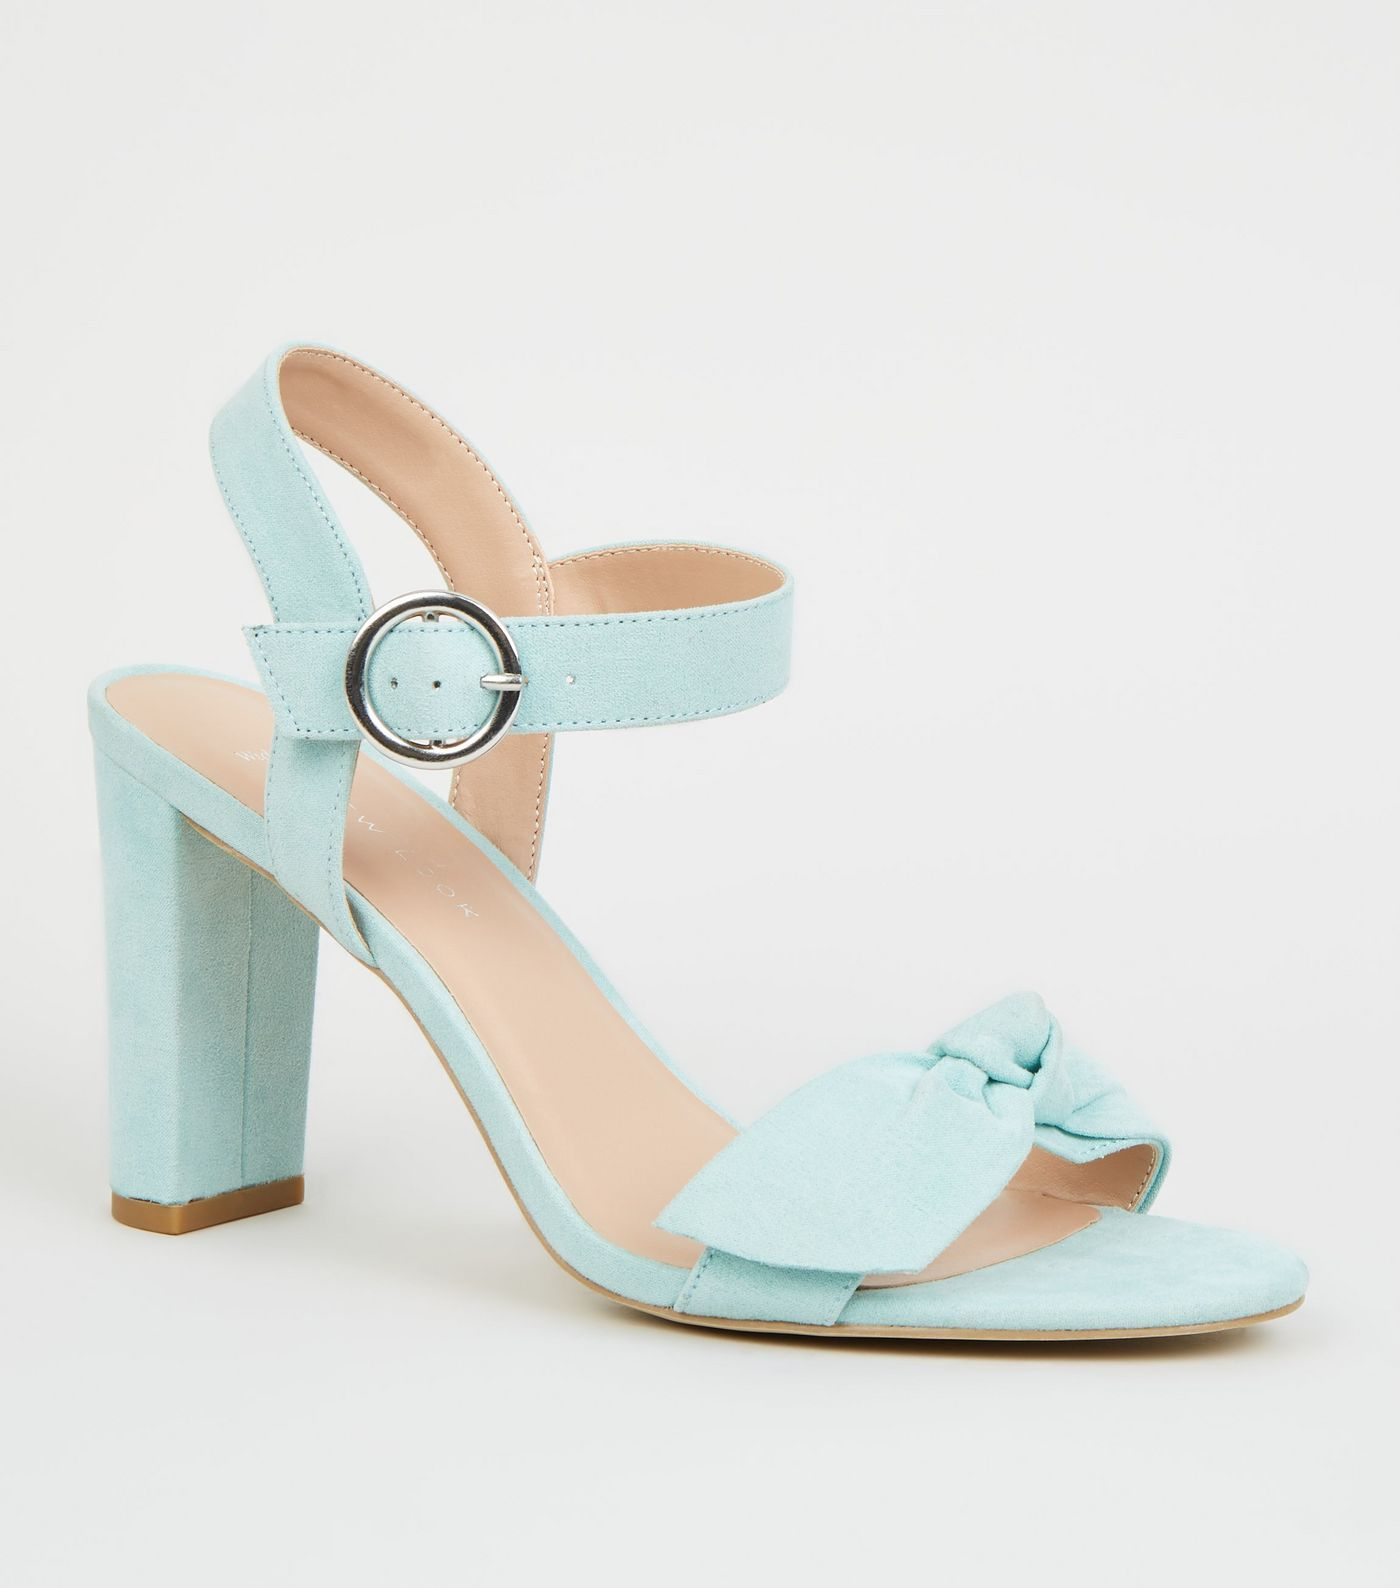 20c54bc3ce8 Wide Fit Mint Green Bow Strap Block Heels in 2019